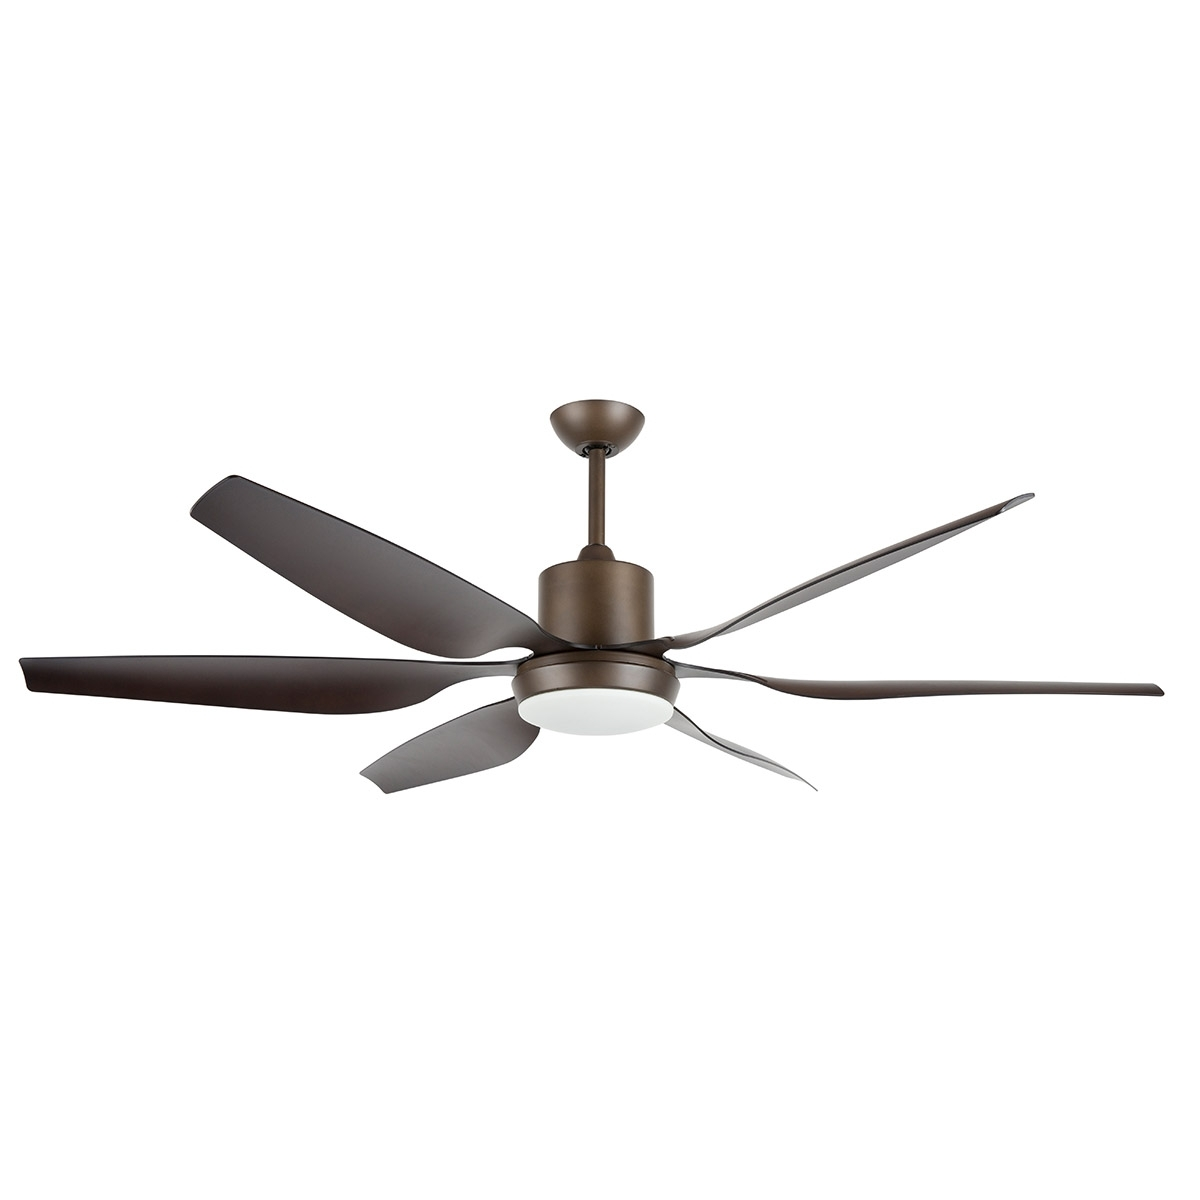 Fashionable 20 Inch Outdoor Ceiling Fans With Light With Regard To Aviator 66″ Dc Ceiling Fan – Brilliant Lighting (View 6 of 20)